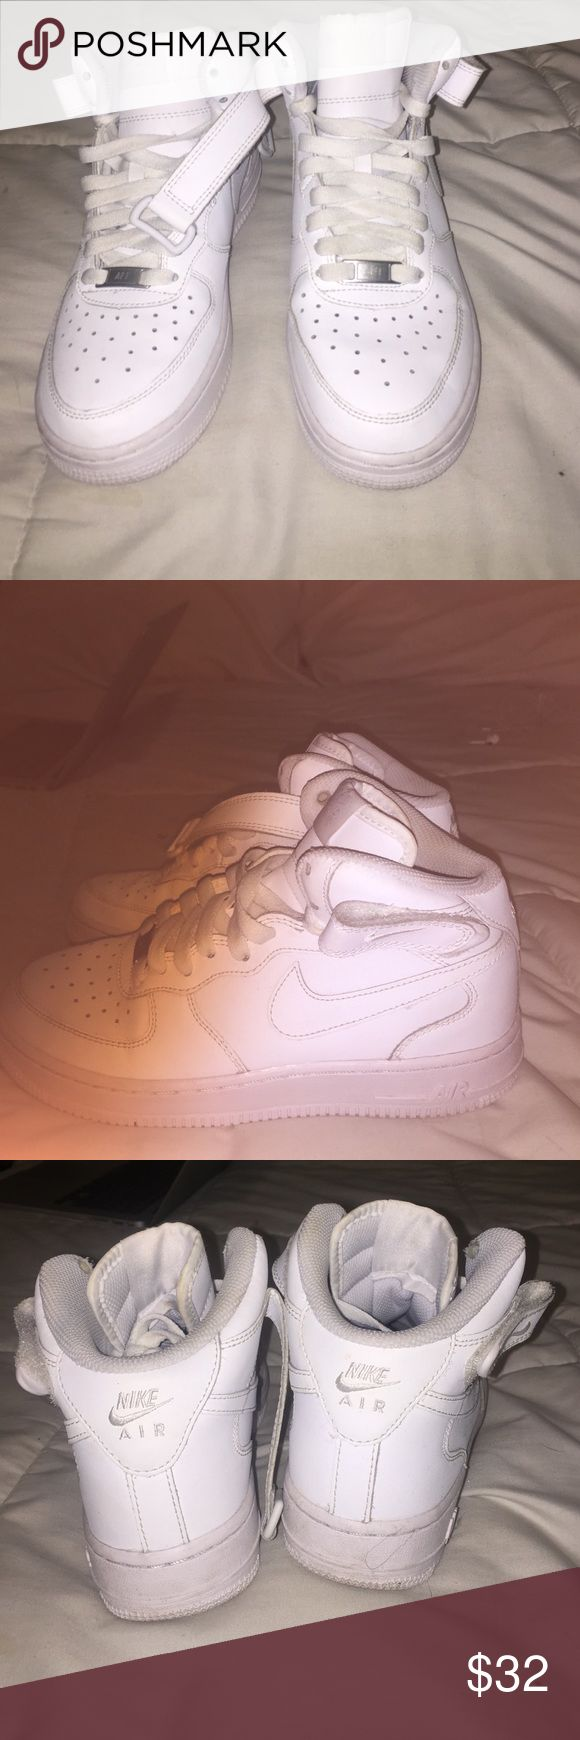 High top Nike air forces Never worn air forces(runs big) Nike Shoes